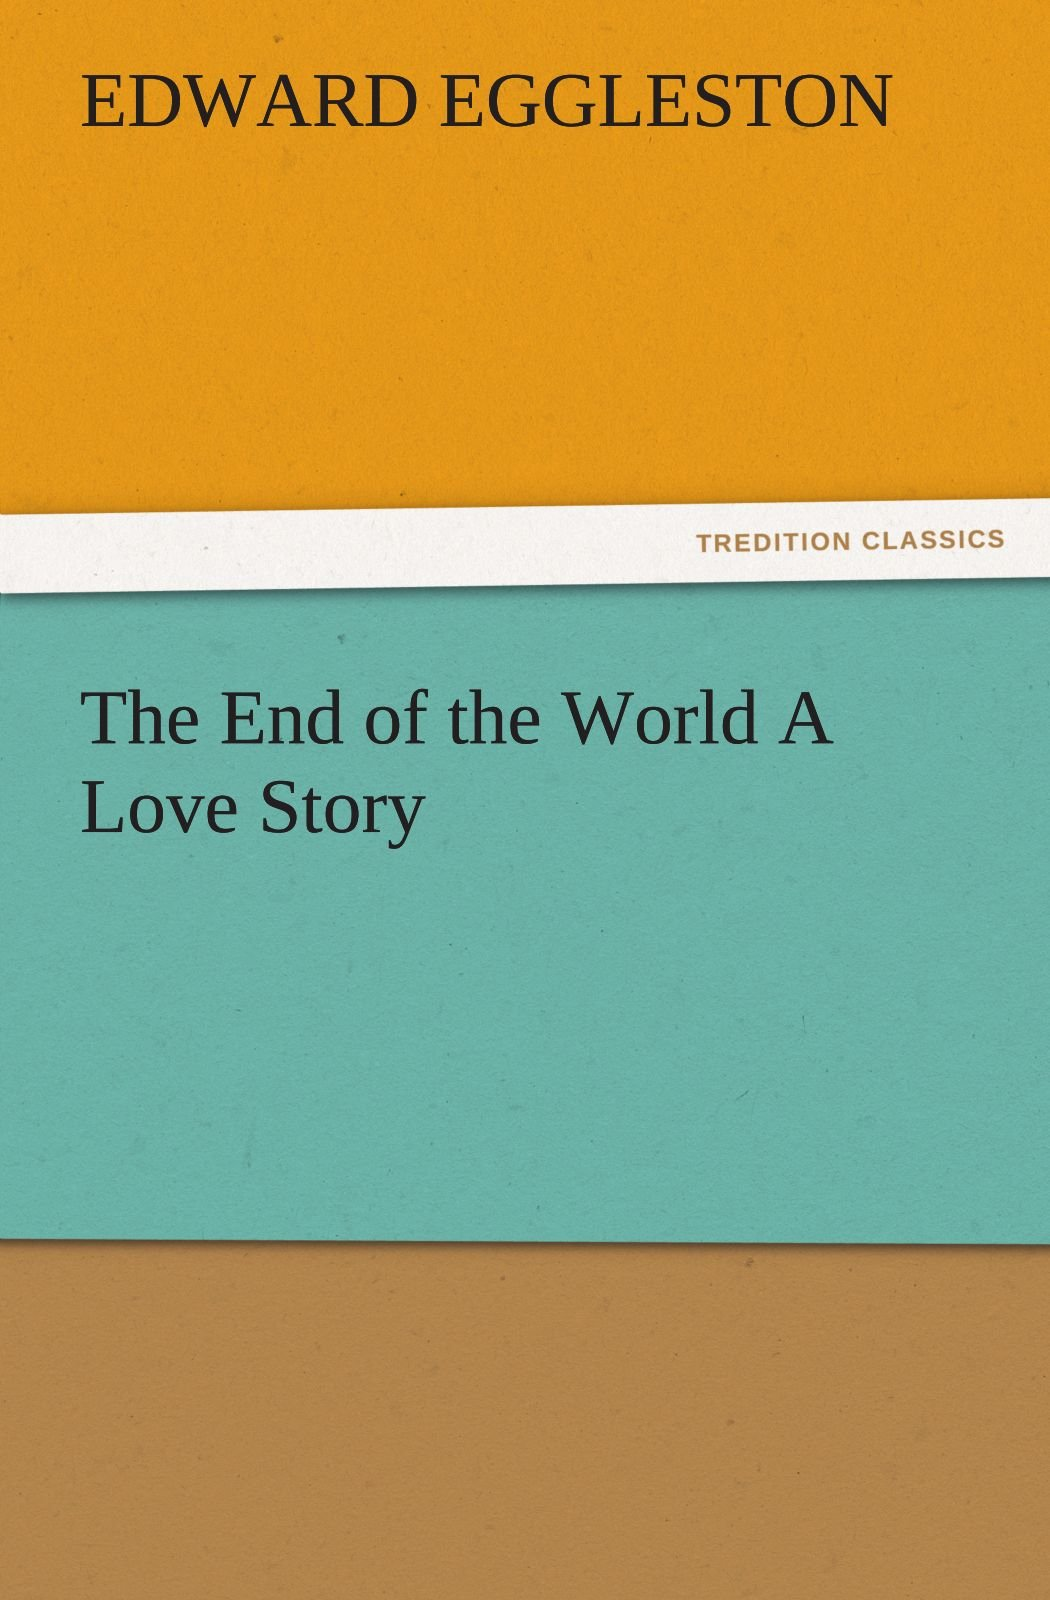 Read Online The End of the World A Love Story (TREDITION CLASSICS) PDF